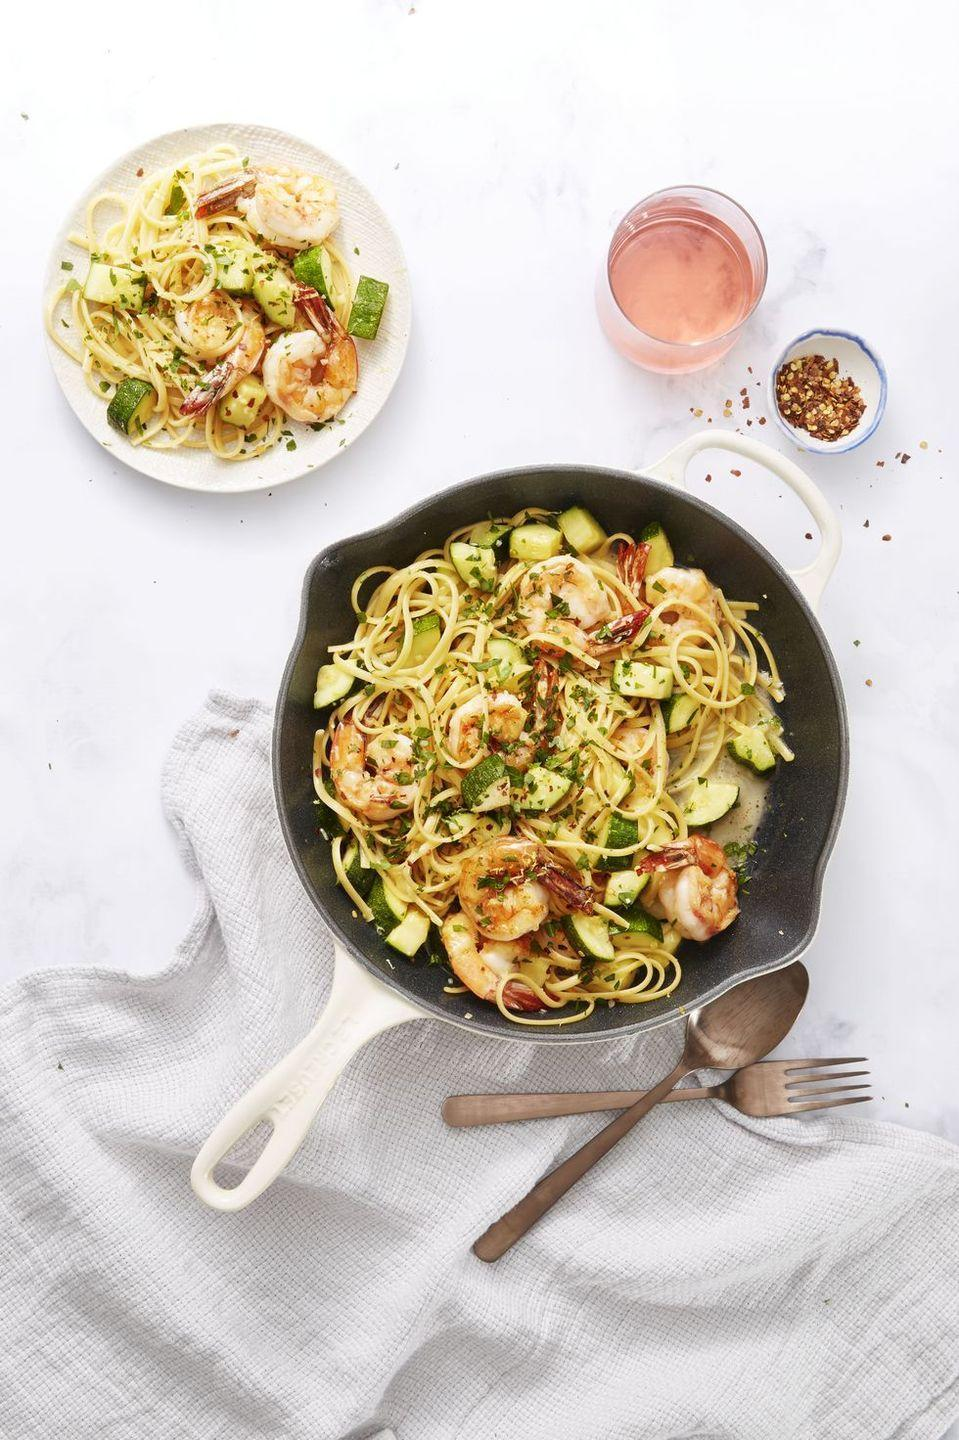 """<p>Pasta dinners don't have always feel heavy. Don't believe us? Just try this light scampi with white wine sauce.<br></p><p><em><a href=""""https://www.goodhousekeeping.com/food-recipes/easy/a34146/shrimp-and-zucchini-scampi/"""" rel=""""nofollow noopener"""" target=""""_blank"""" data-ylk=""""slk:Get the recipe for Shrimp and Zucchini Scampi »"""" class=""""link rapid-noclick-resp"""">Get the recipe for Shrimp and Zucchini Scampi »</a></em></p>"""